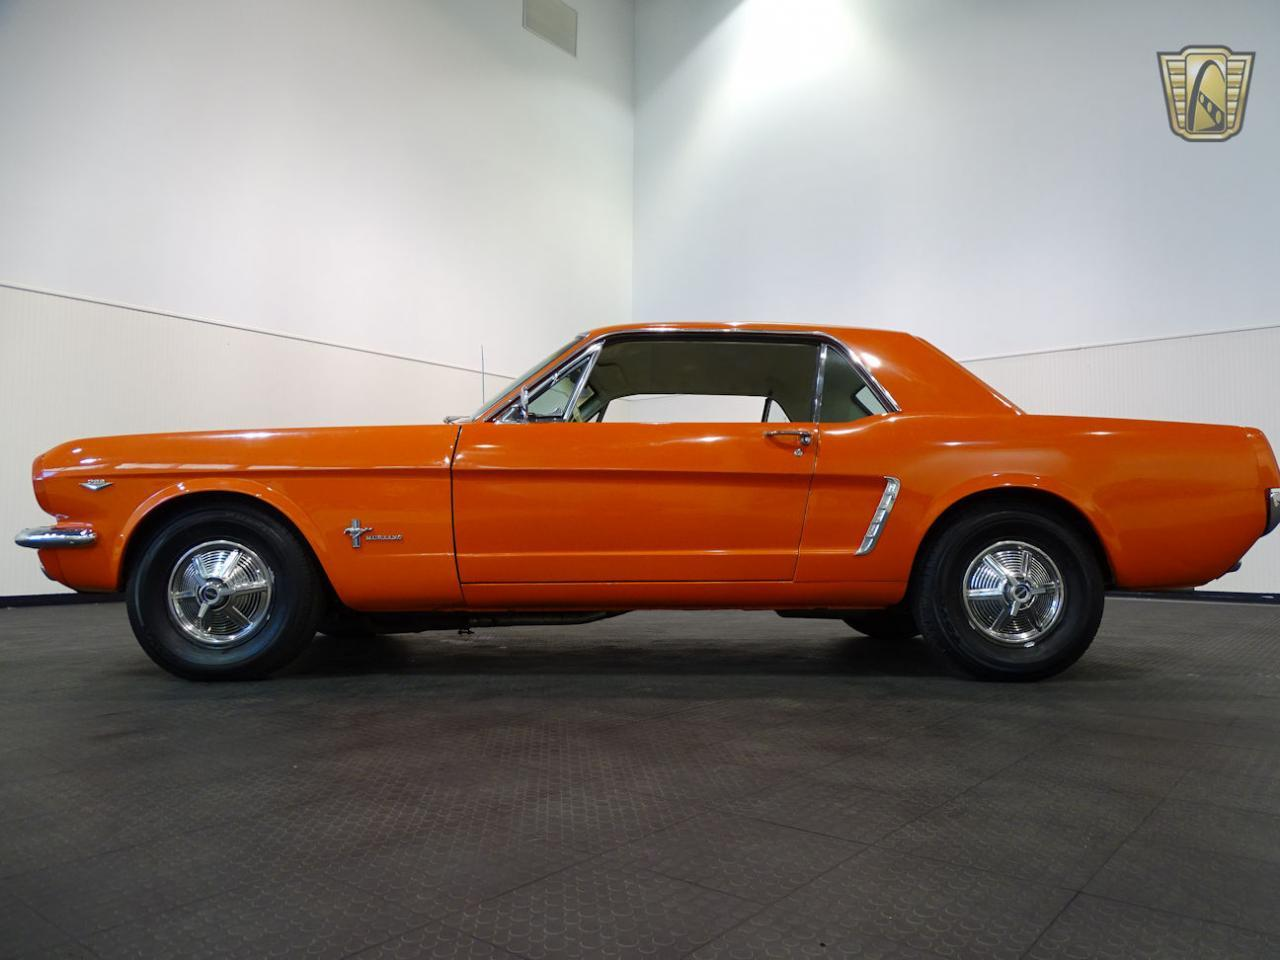 Large Picture of Classic 1965 Ford Mustang - $20,995.00 Offered by Gateway Classic Cars - Indianapolis - MB4P